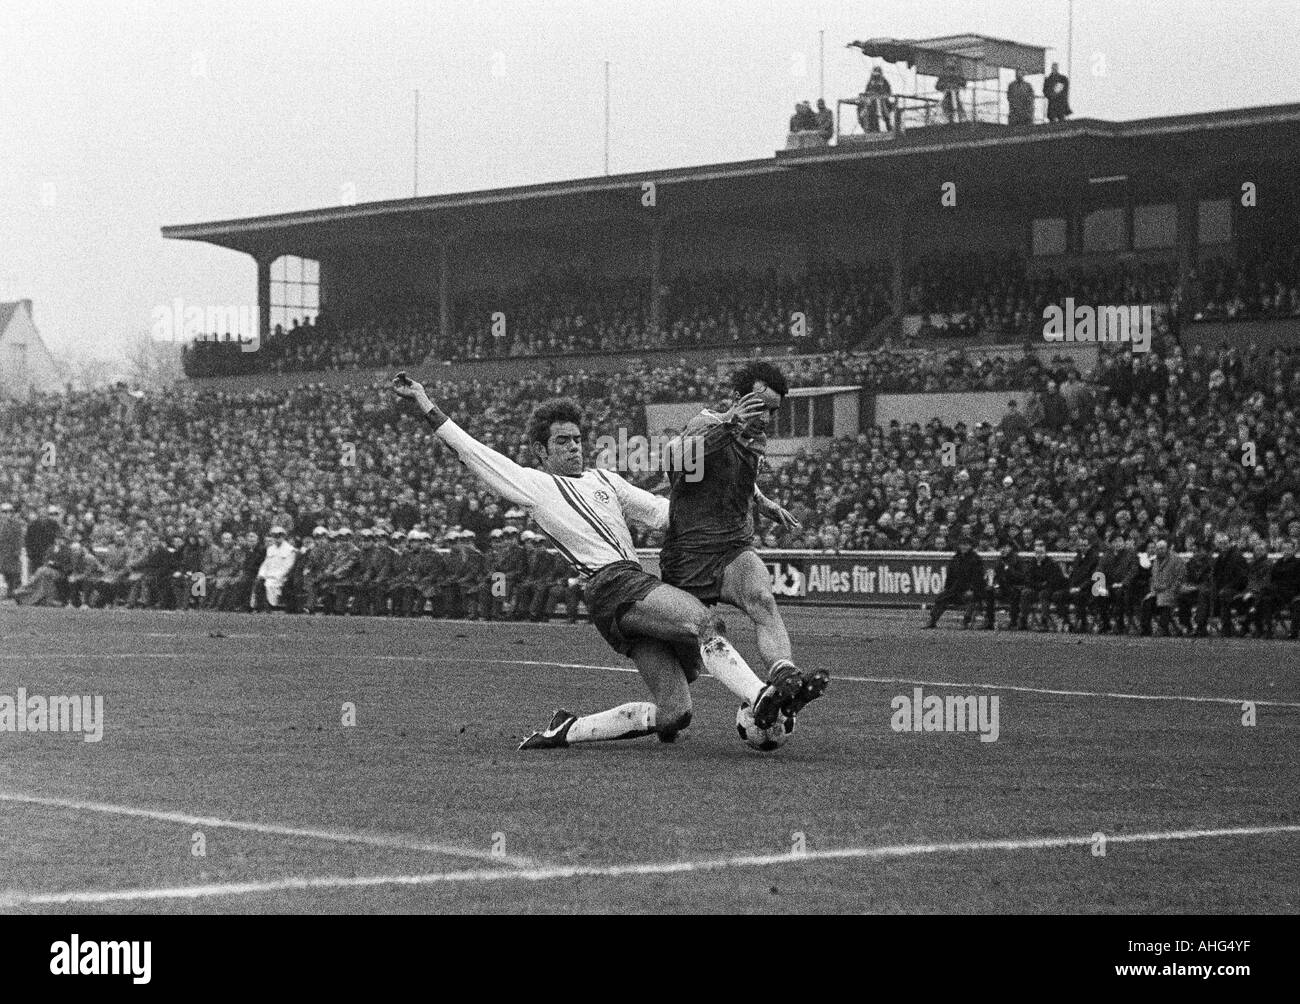 football, Regionalliga West, 1968/1969, Niederrhein Stadium in Oberhausen, Rot-Weiss Oberhausen versus Rot-Weiss Essen 1:1, scene of the match, duel between Rolf Lefkes (RWE) left and Franz Krauthausen (RWO) - Stock Image